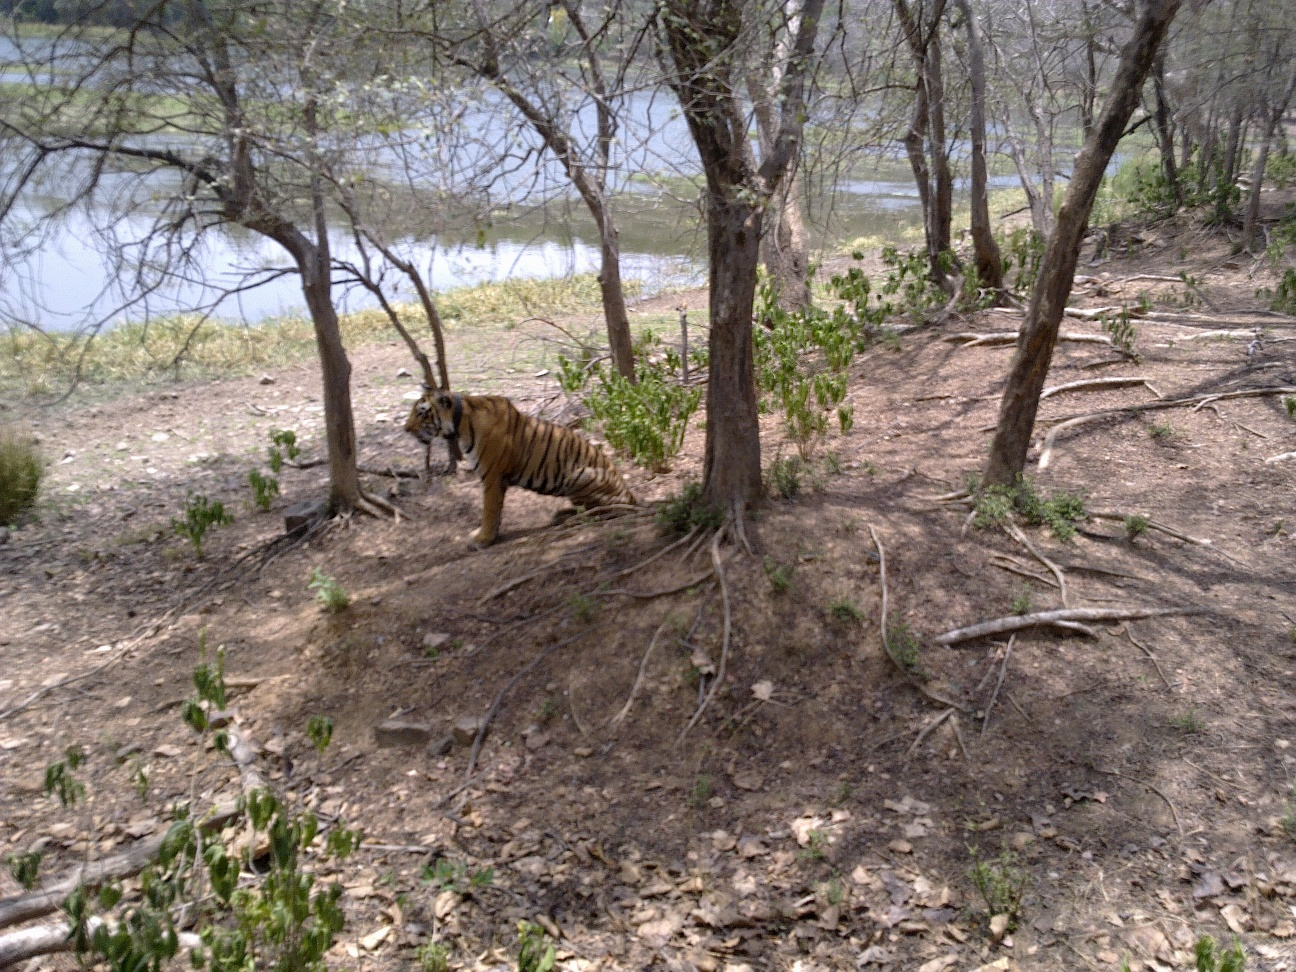 A Tiger near a water hole